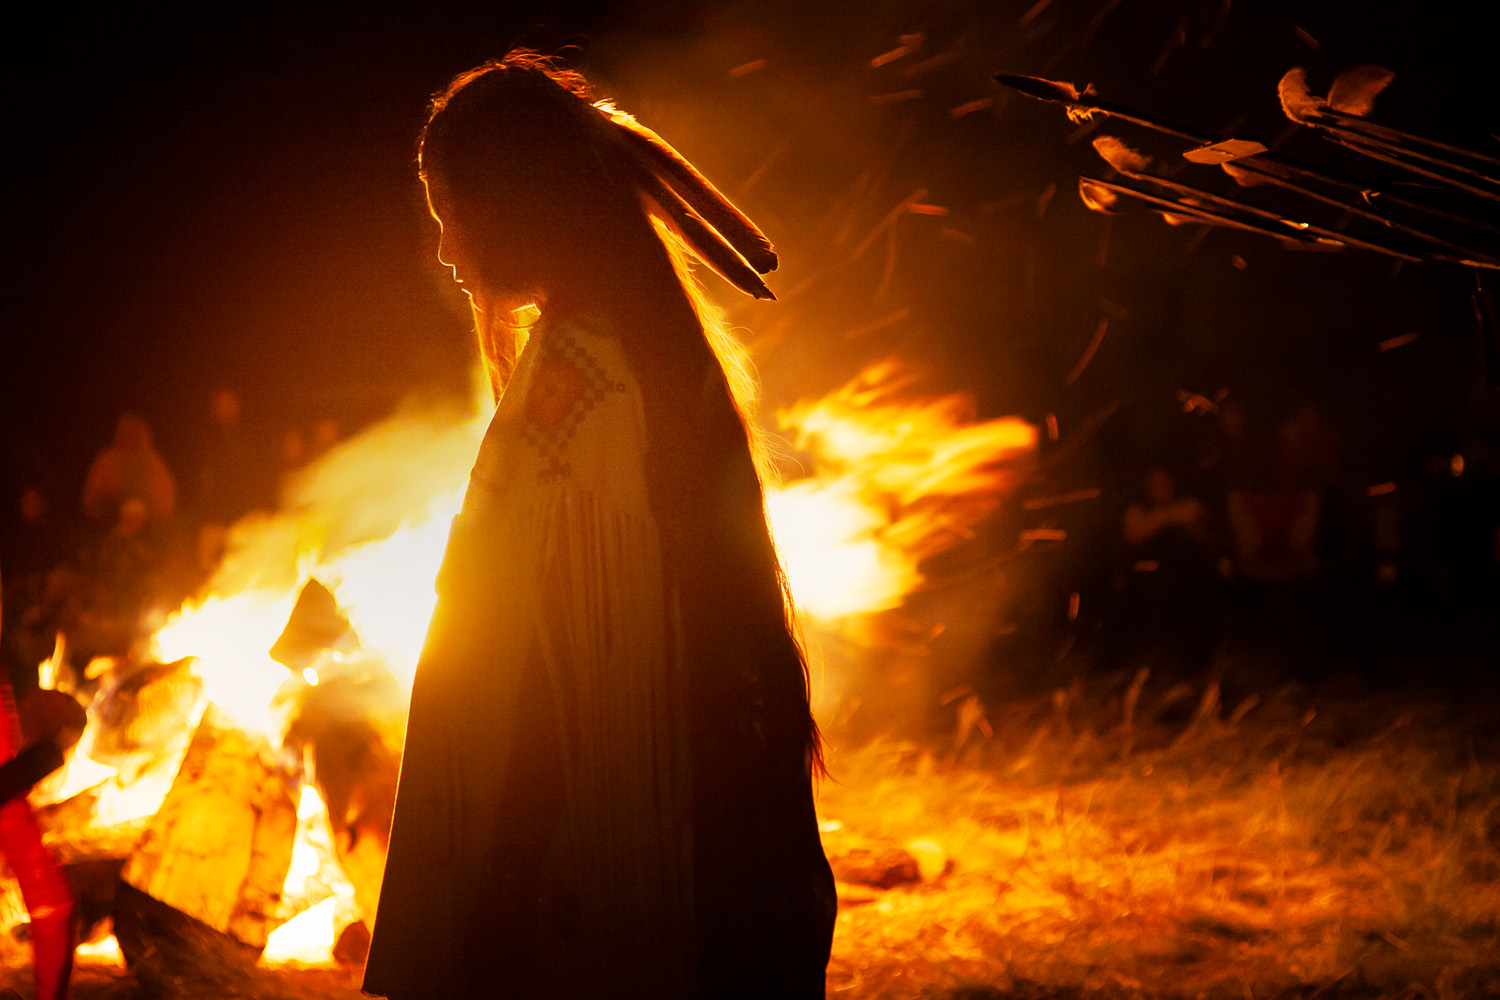 Malia Enjady, silhouetted by the campfire